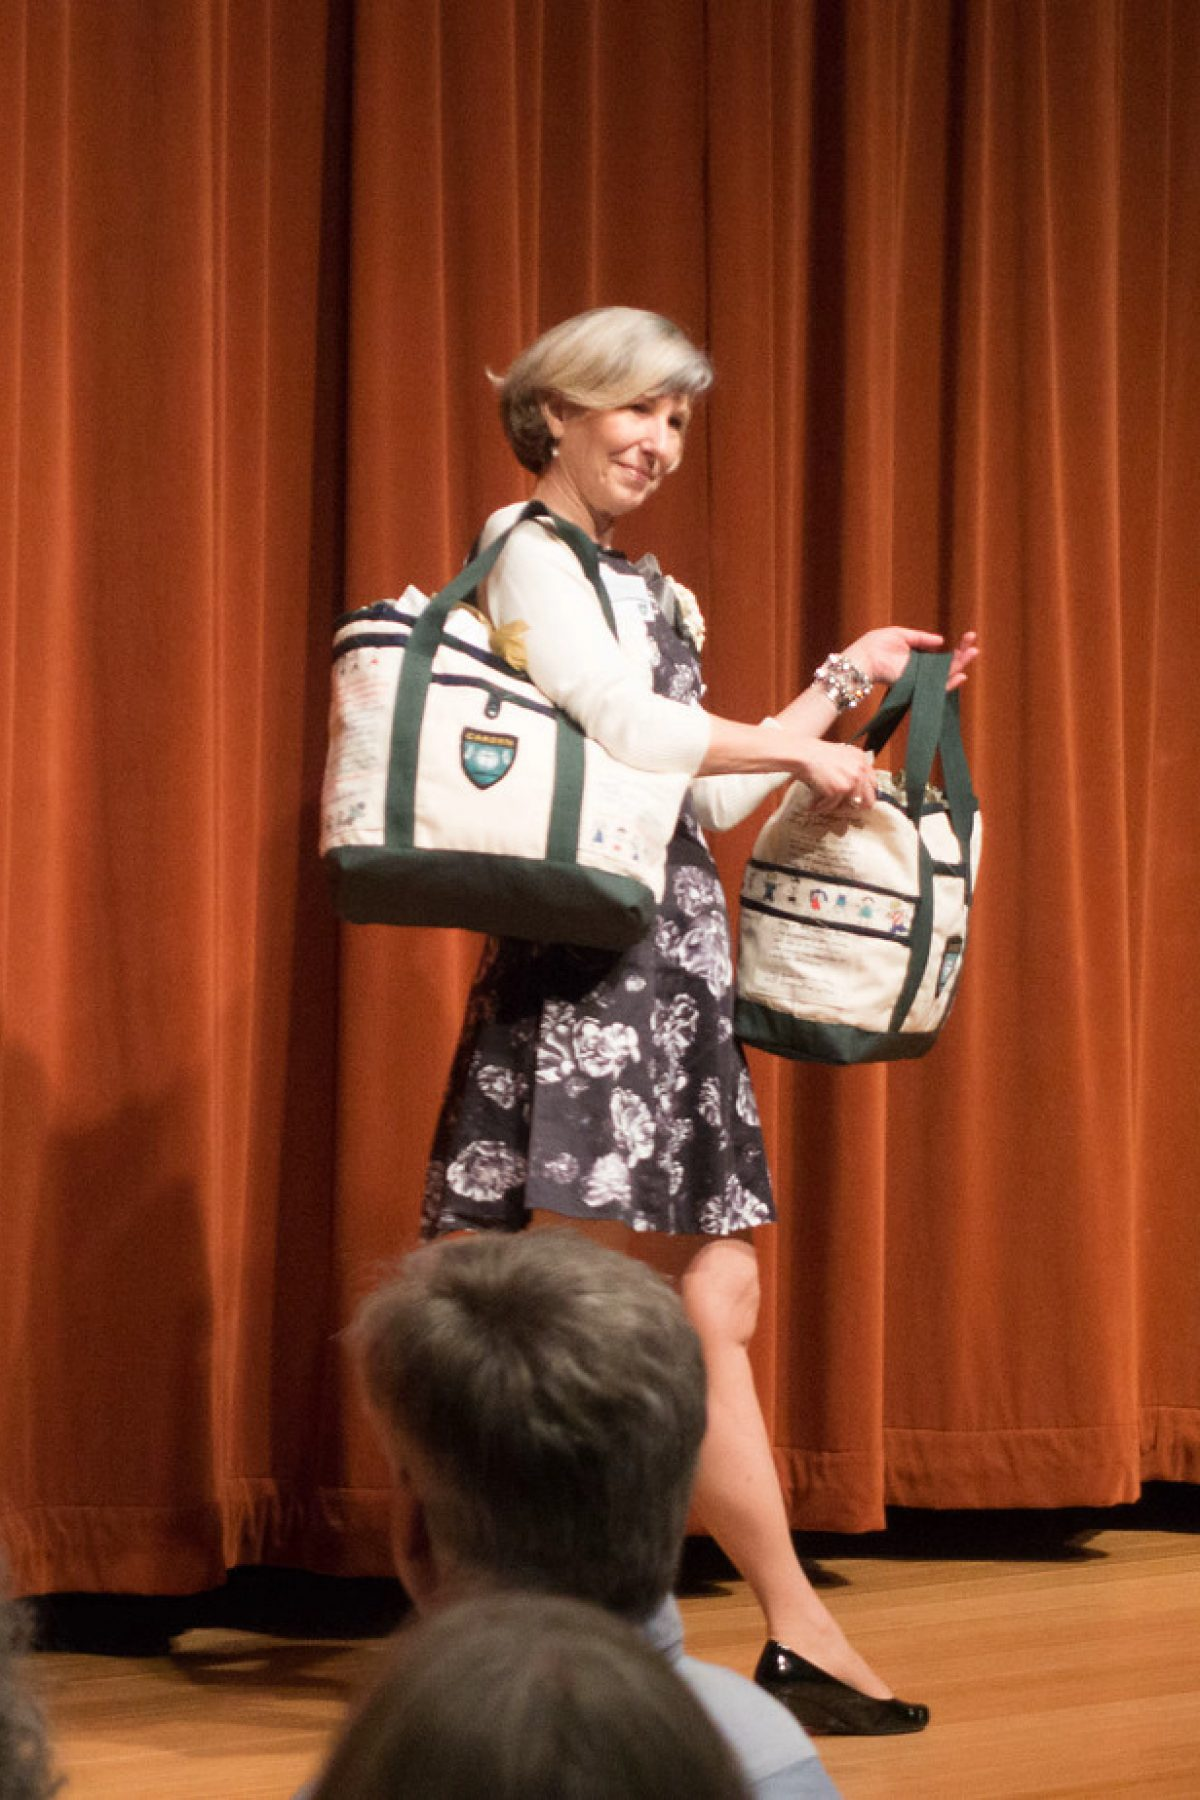 Ccs 25Th Anniversary Celebration Mrs  Lund Bags